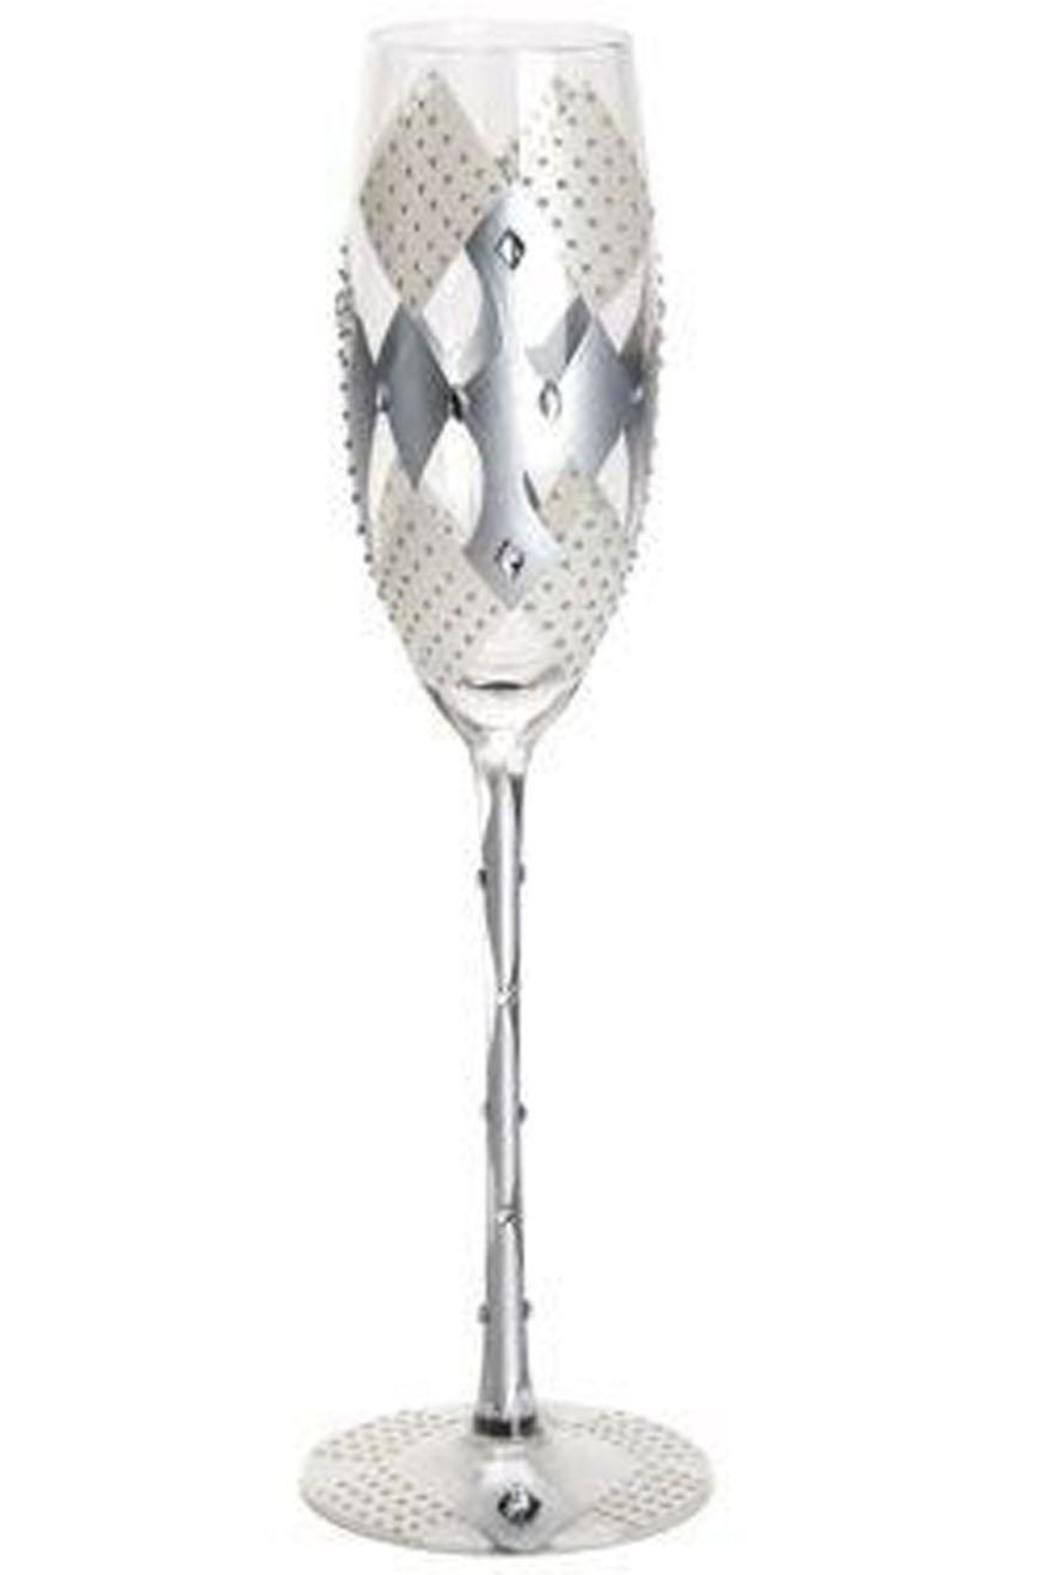 Set of 2 Lolita Champagne Flutes for special occasions, the holiday ...